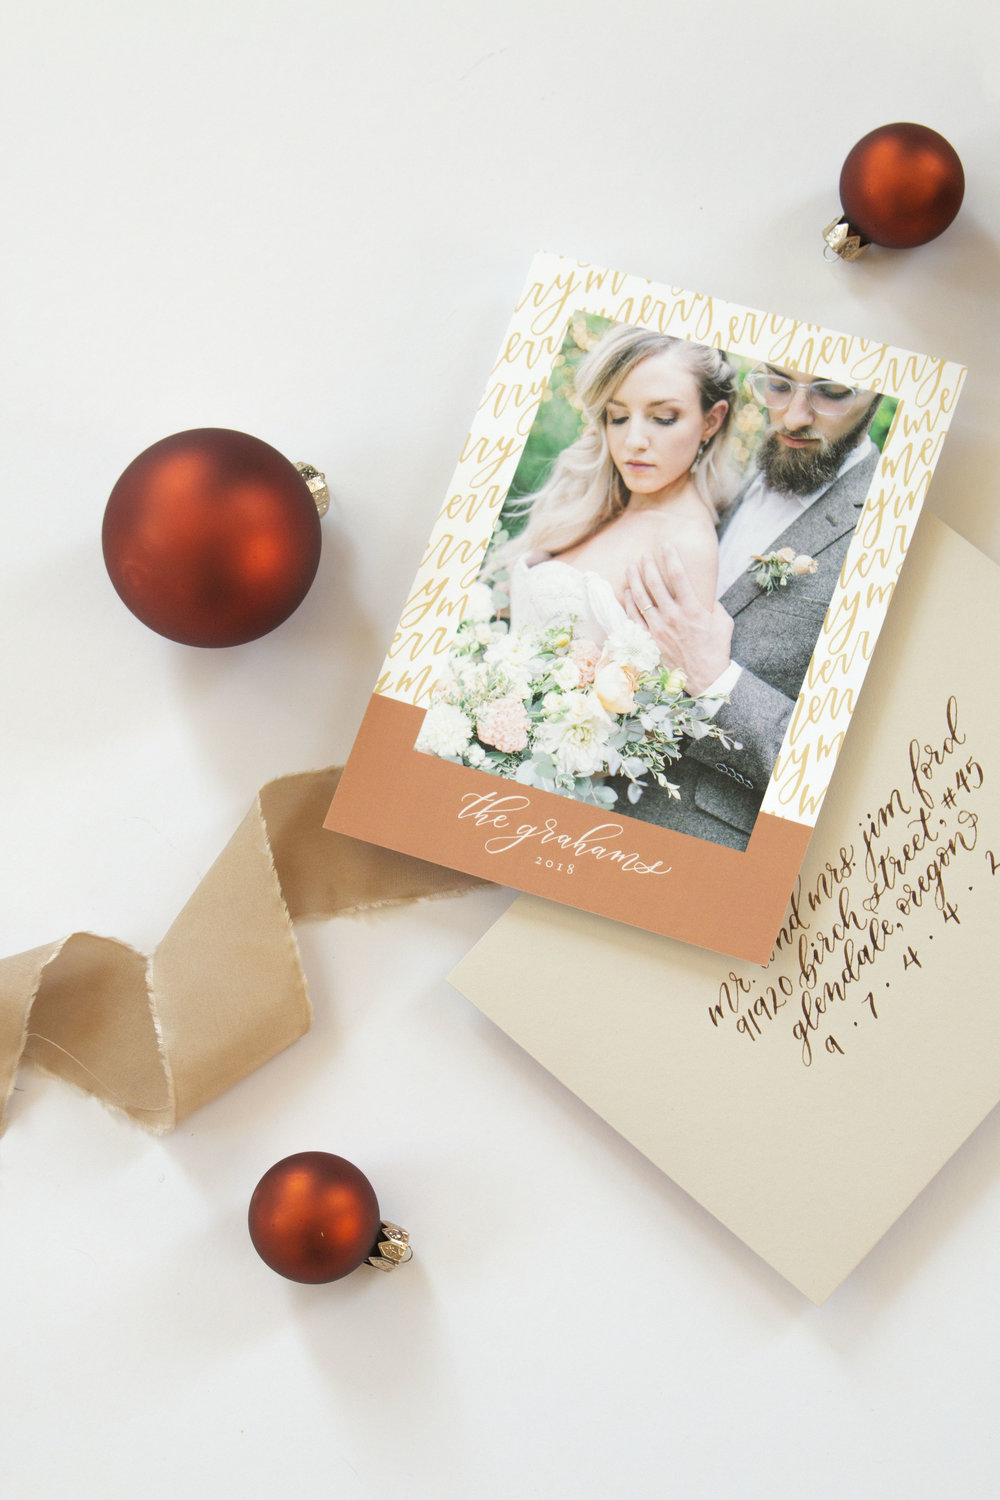 Merry Merry Photo Holiday and Christmas Card by Caitlin O'Bryant Design. Sample photo by Kirsten Wilson Photography.